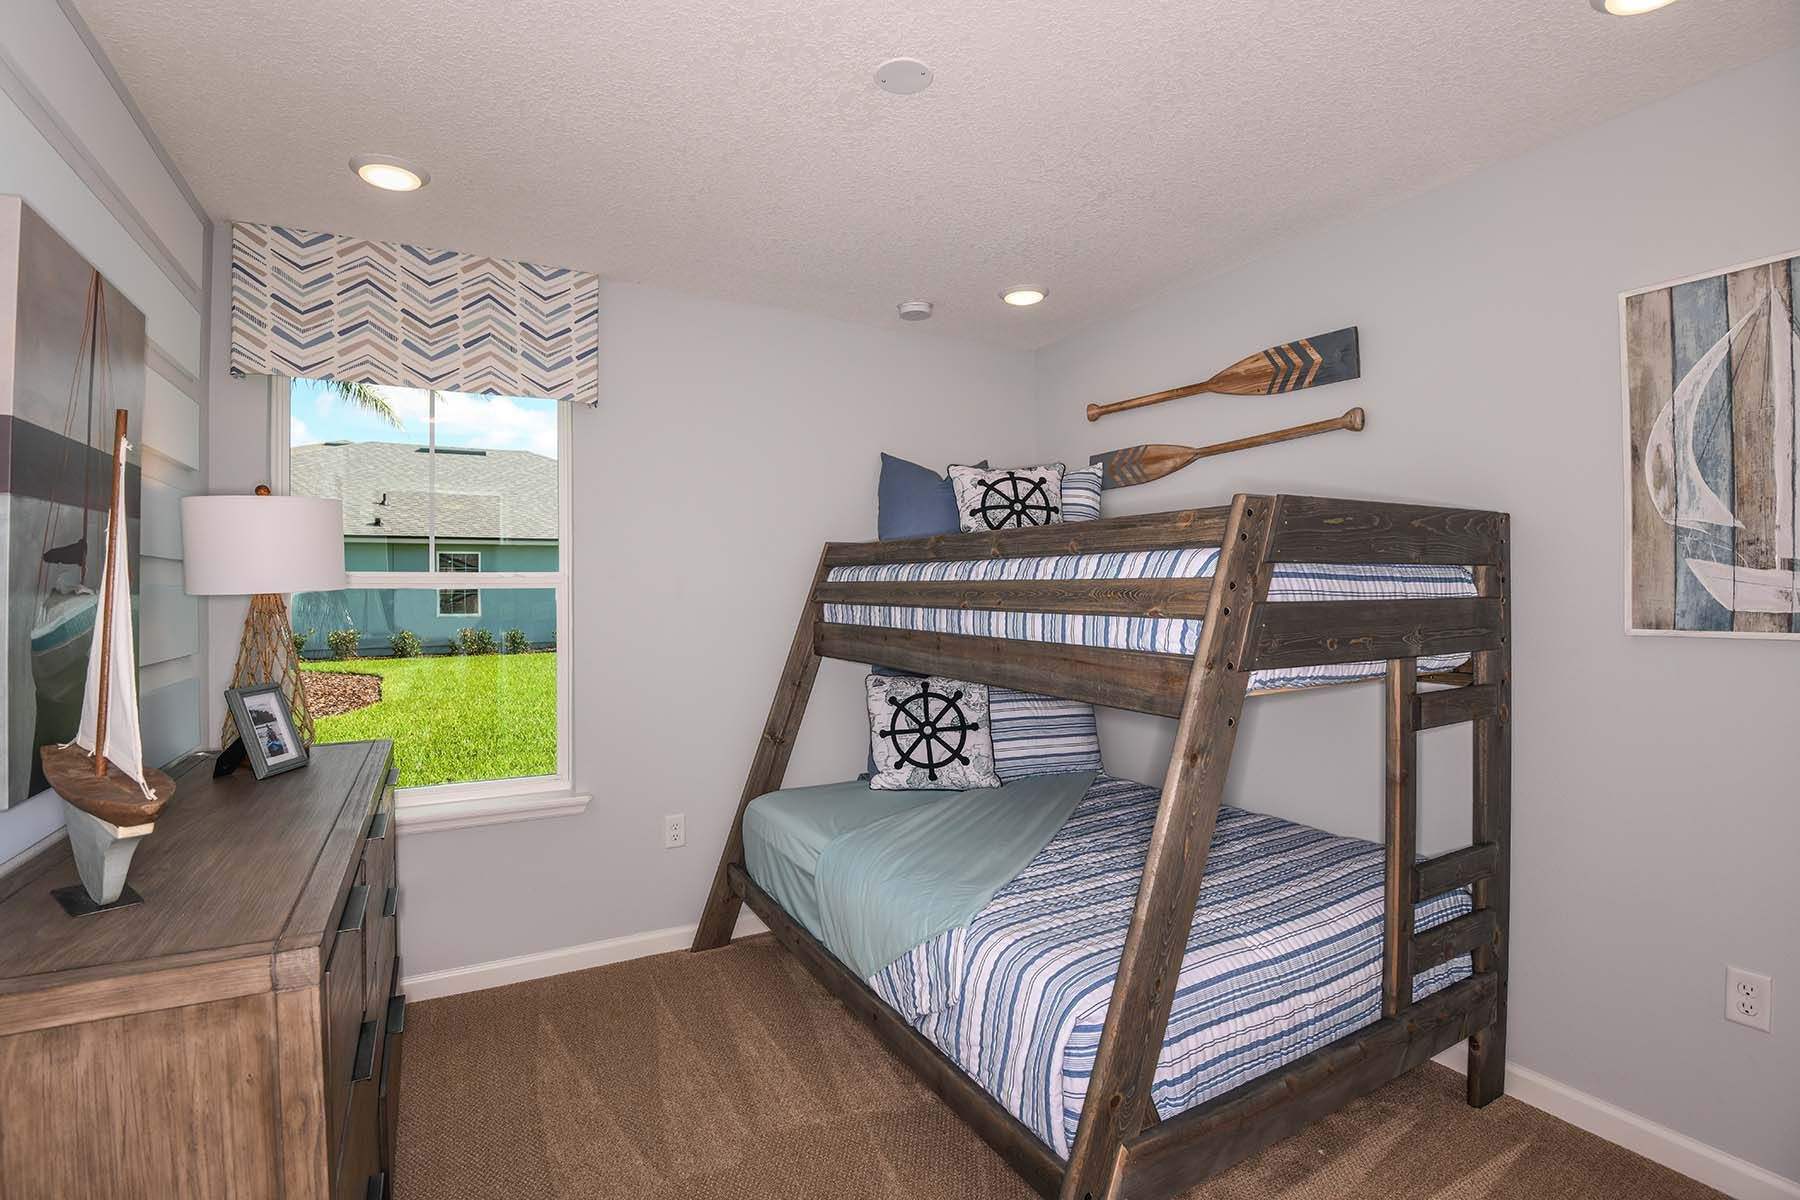 Bedroom featured in the Carrabelle By Mattamy Homes in Jacksonville-St. Augustine, FL